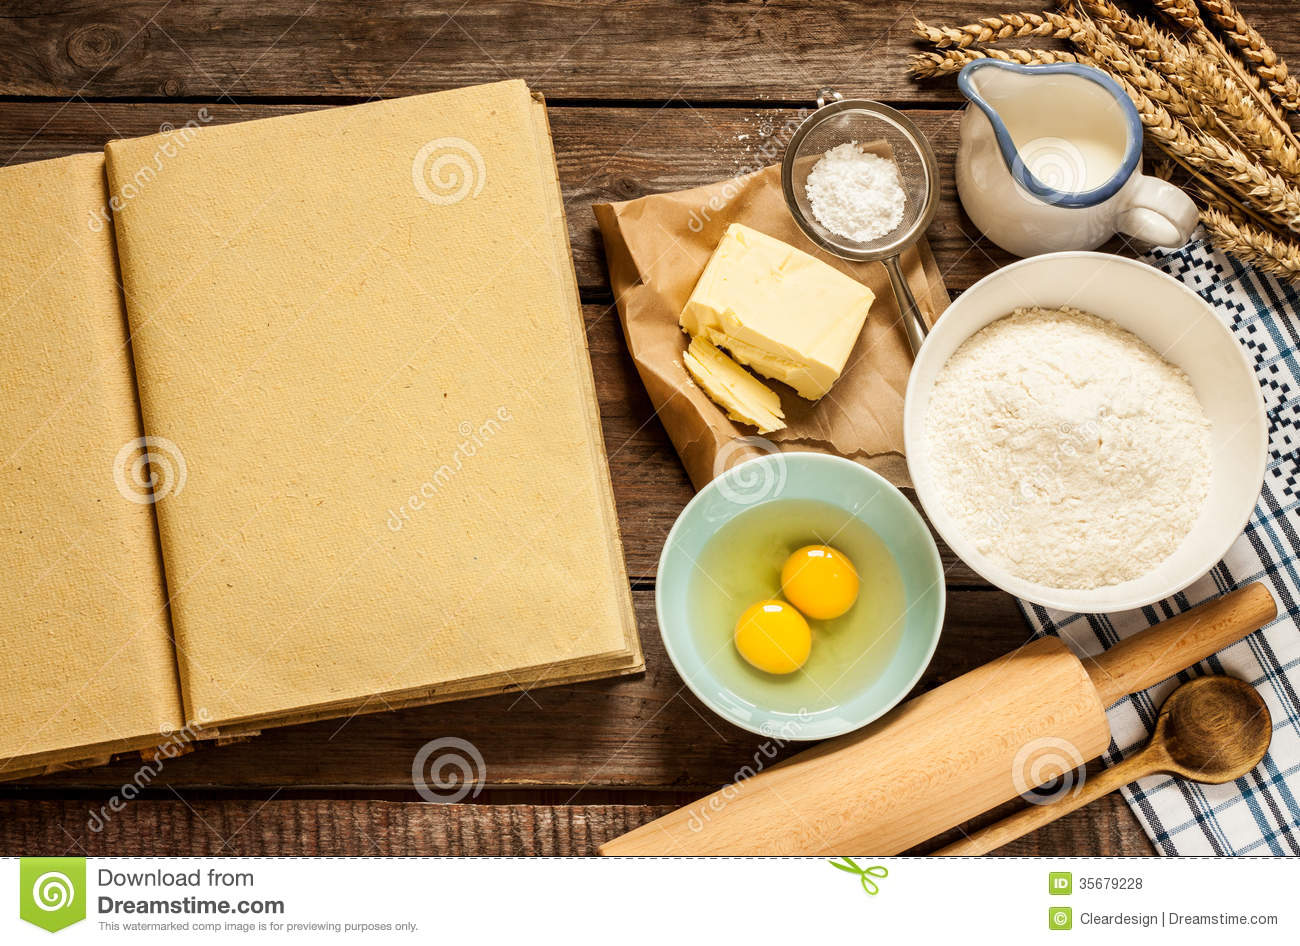 Kitchen For Baking ~ Rural kitchen baking cake ingredients and blank cook book